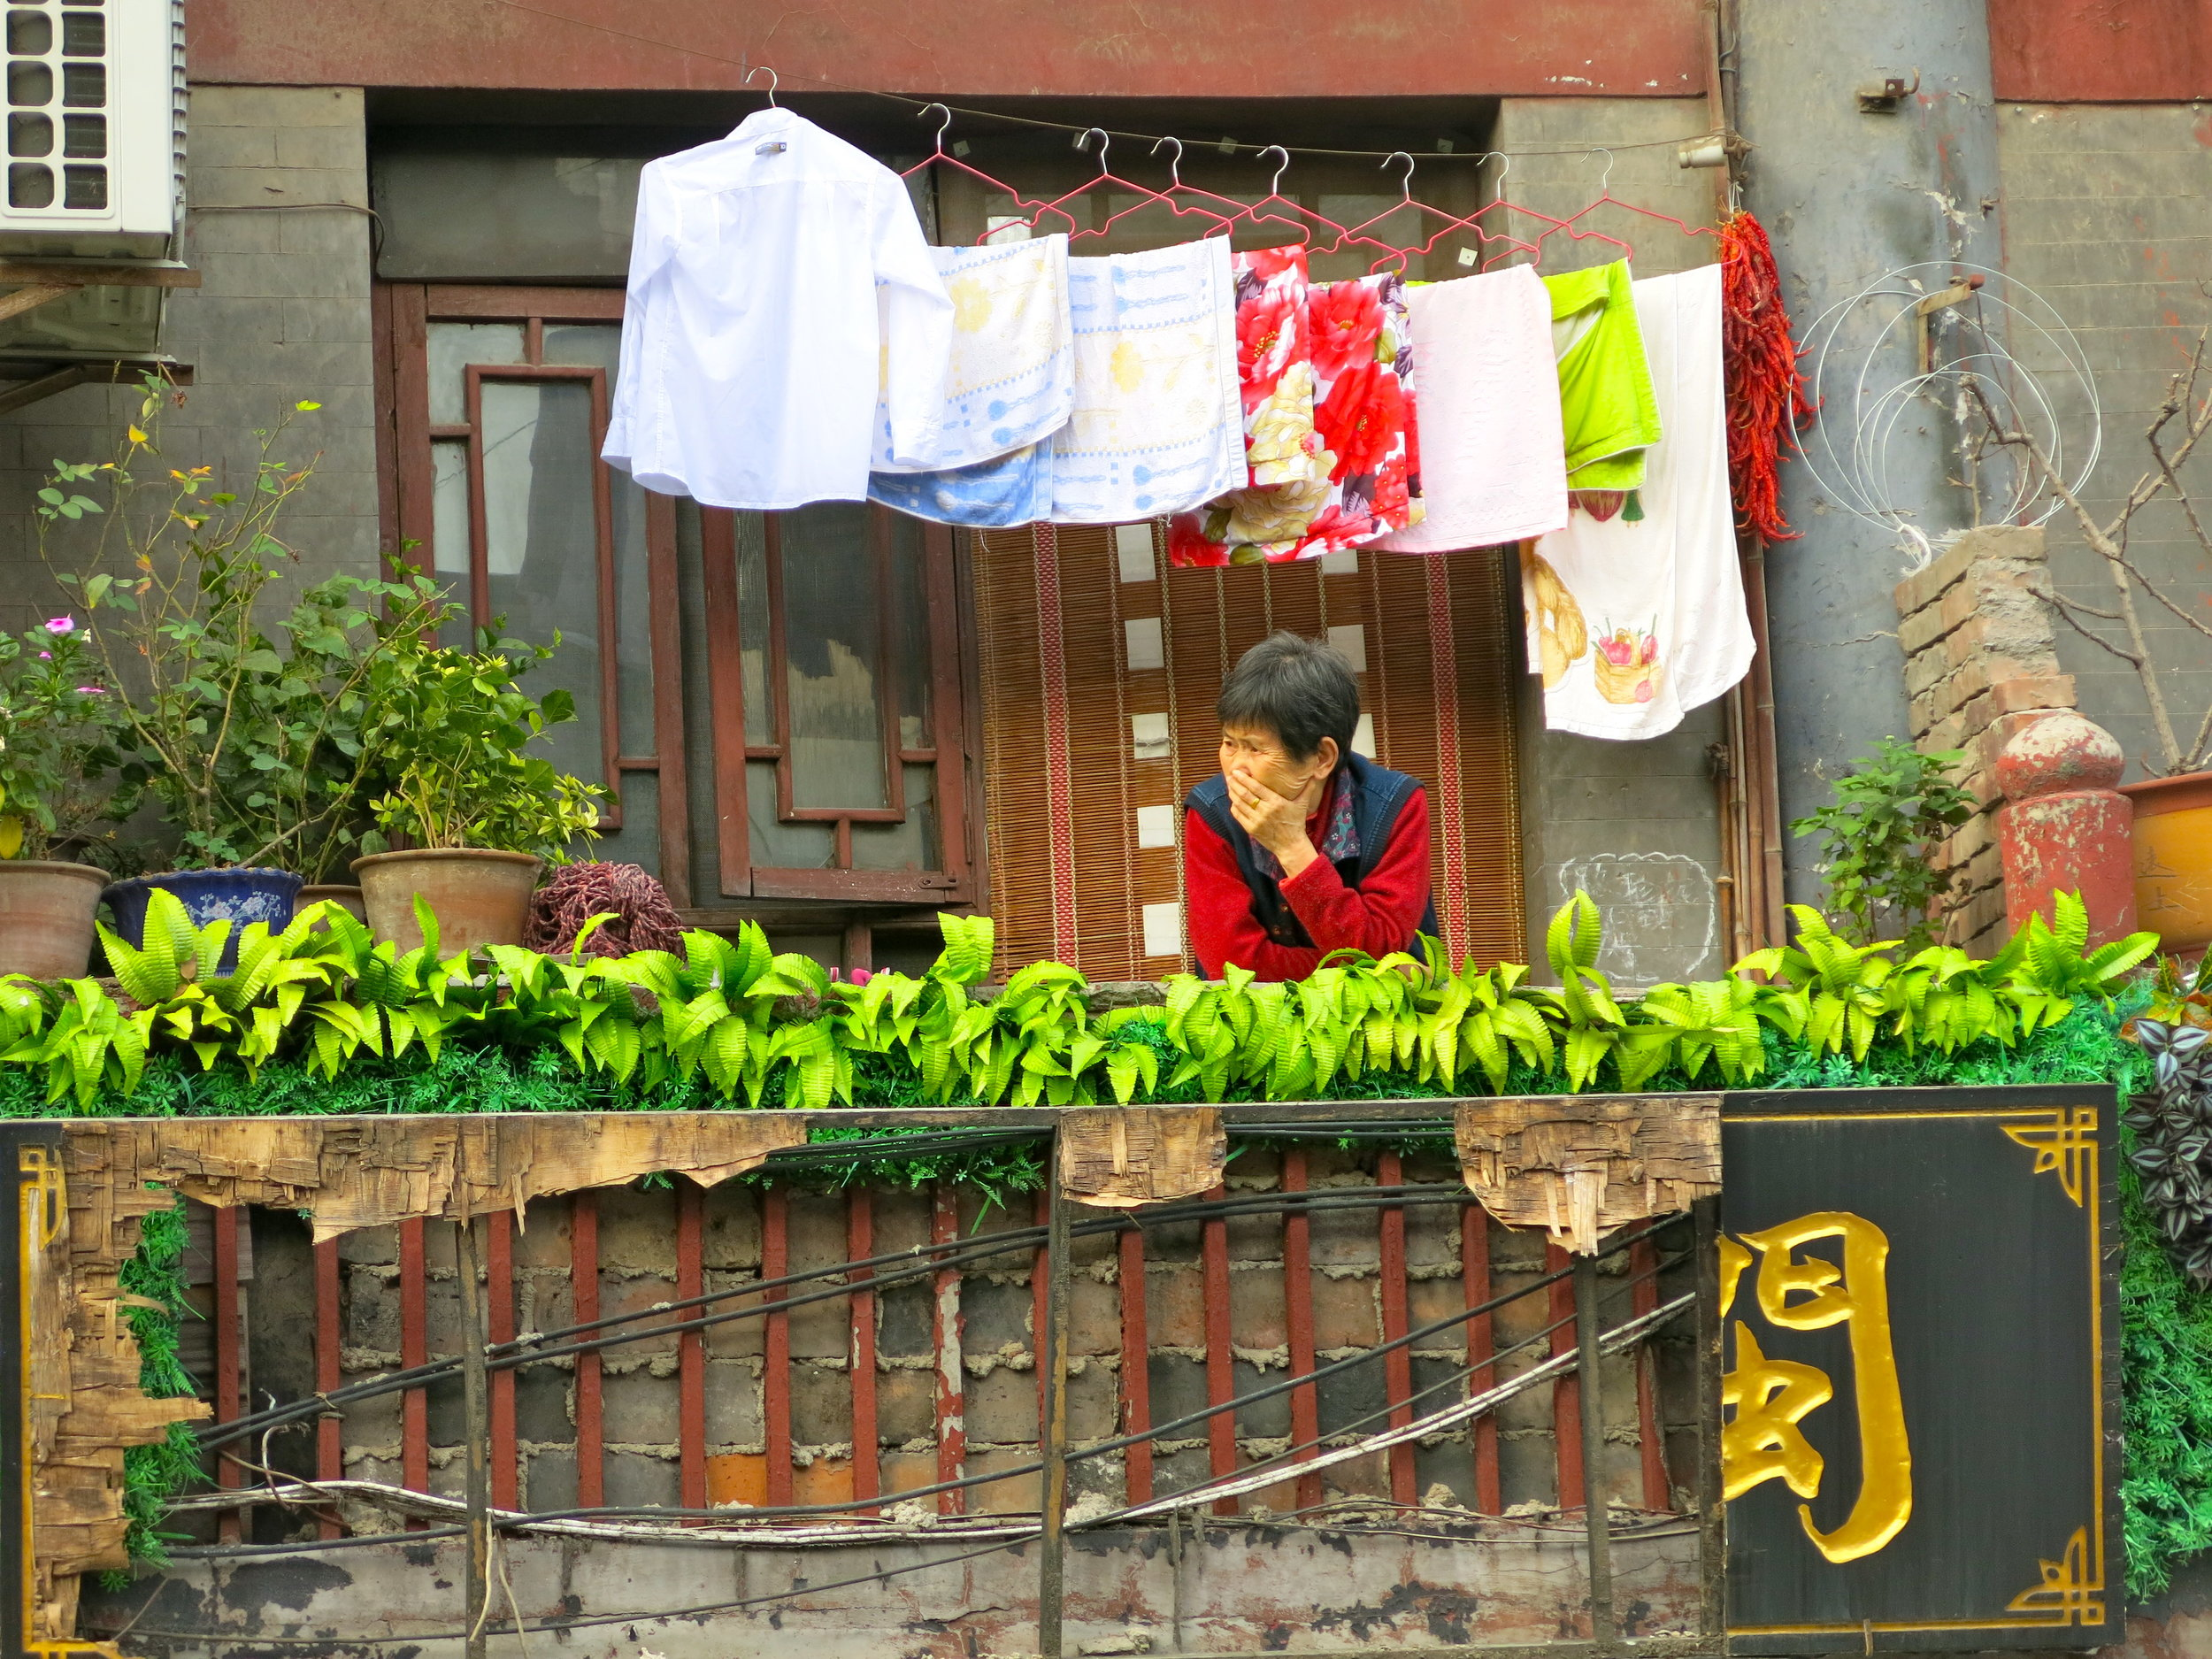 Shuyuanmen street kept the vibe of traditional China